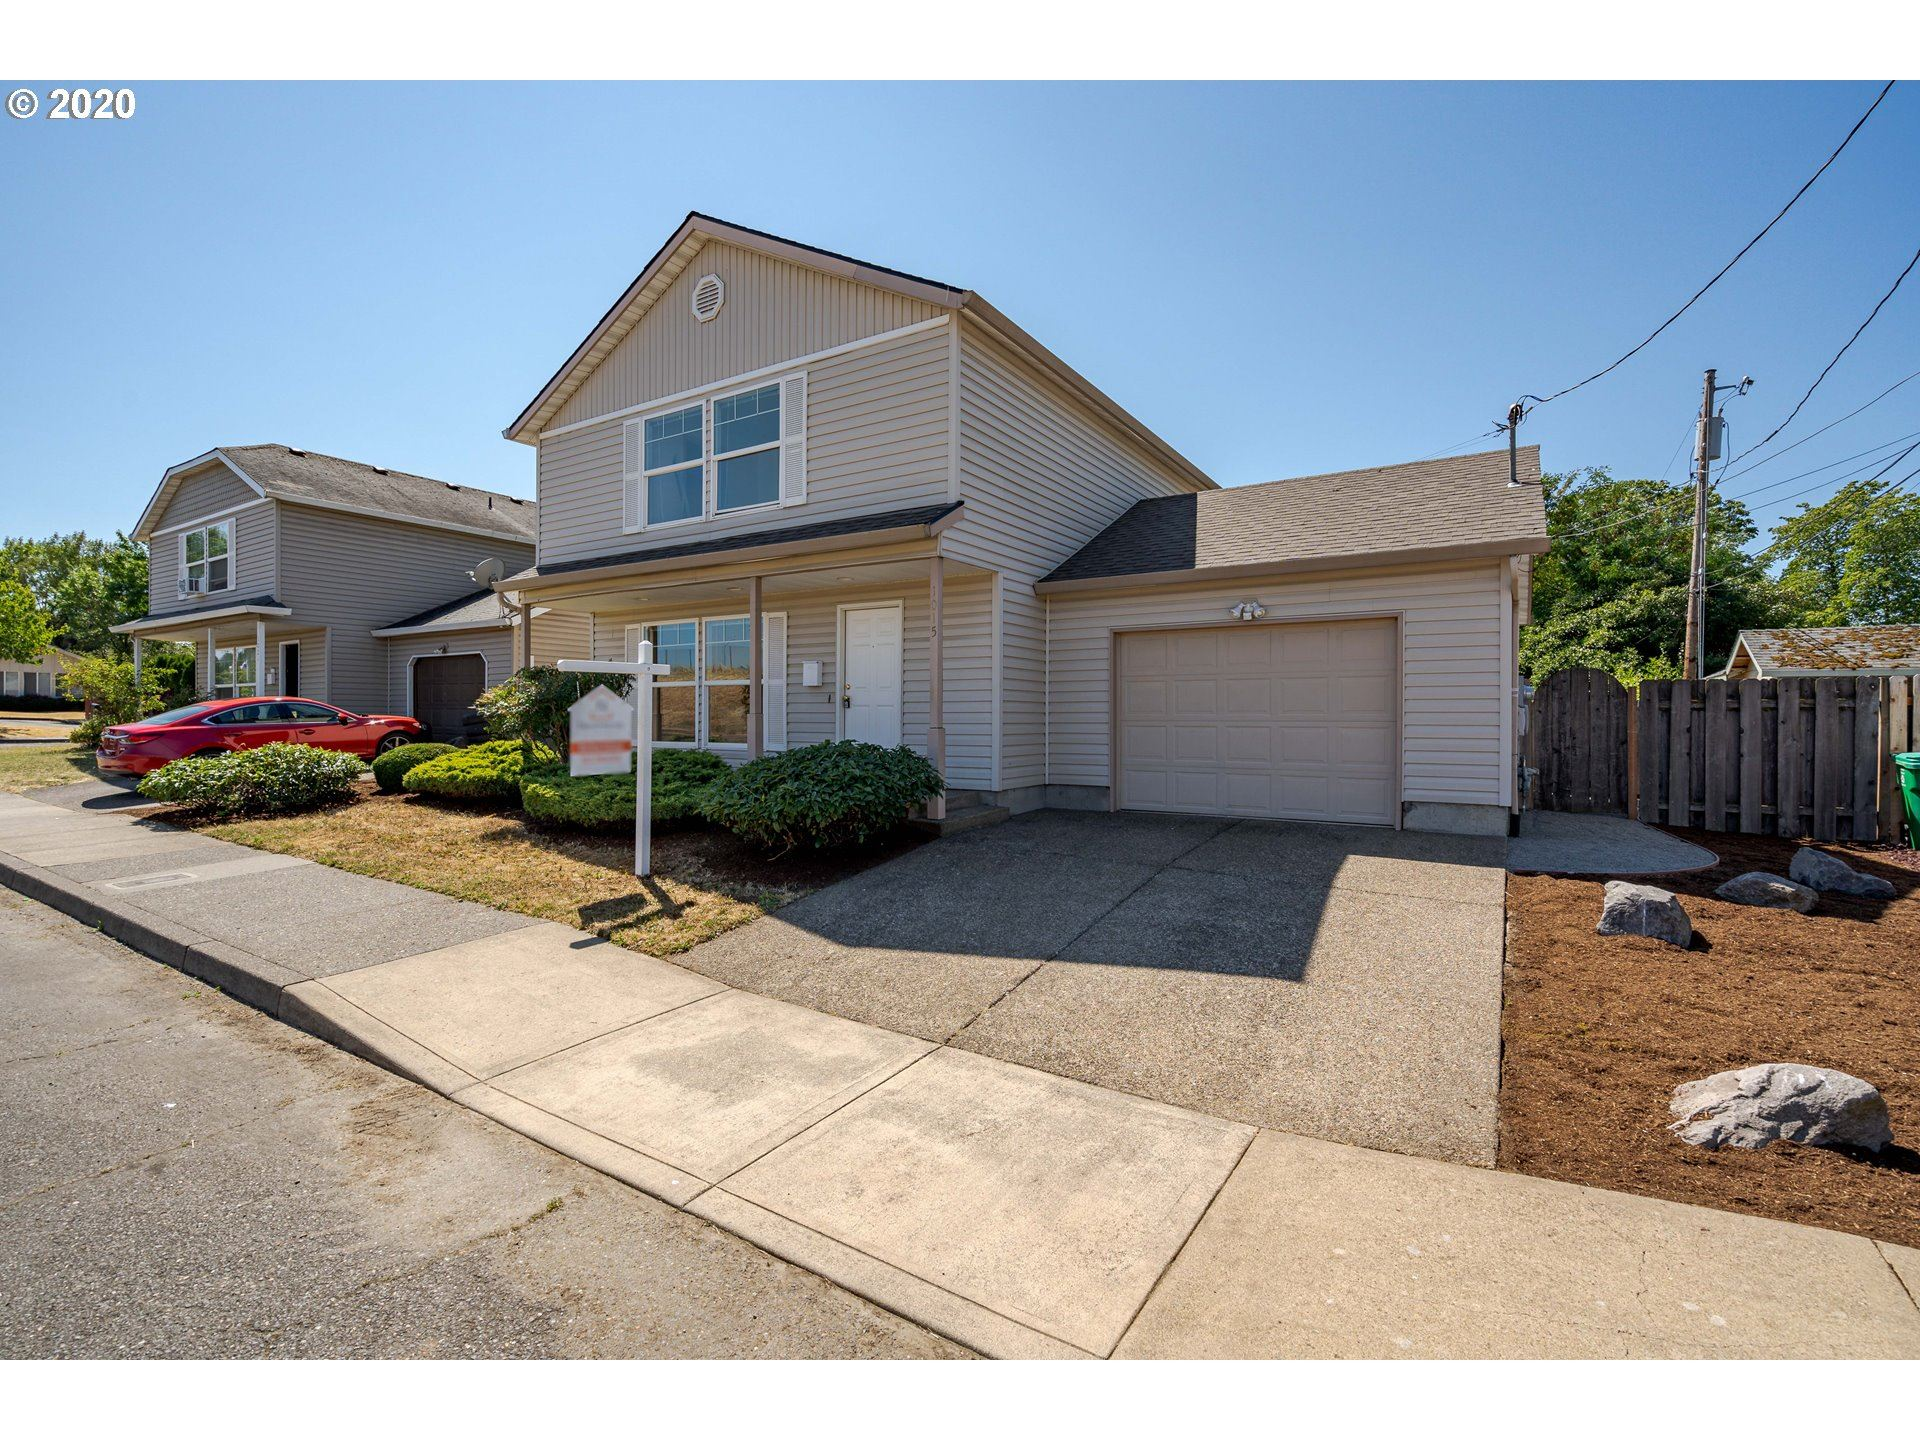 1015 SE 94TH AVE, Portland, OR 97216 - MLS#: 20215227